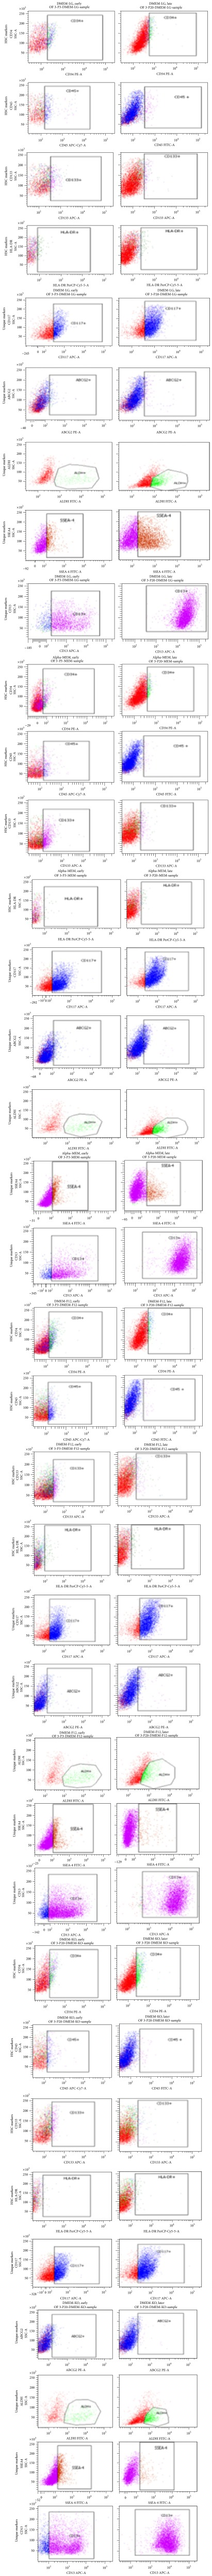 Flowcytometric characterization of HSC and unique markers of omentum fat derived MSC. Characterization of omentum fat derived MSC at early (P3) and late (P20) passages in DMEM-LG, Alpha-MEM, DMEM-F12, and DMEM-KO for CD34, CD45, CD133, HLA-DR, CD117, ABCG2, ALDH, SSEA4, and CD13 using flowcytometry.